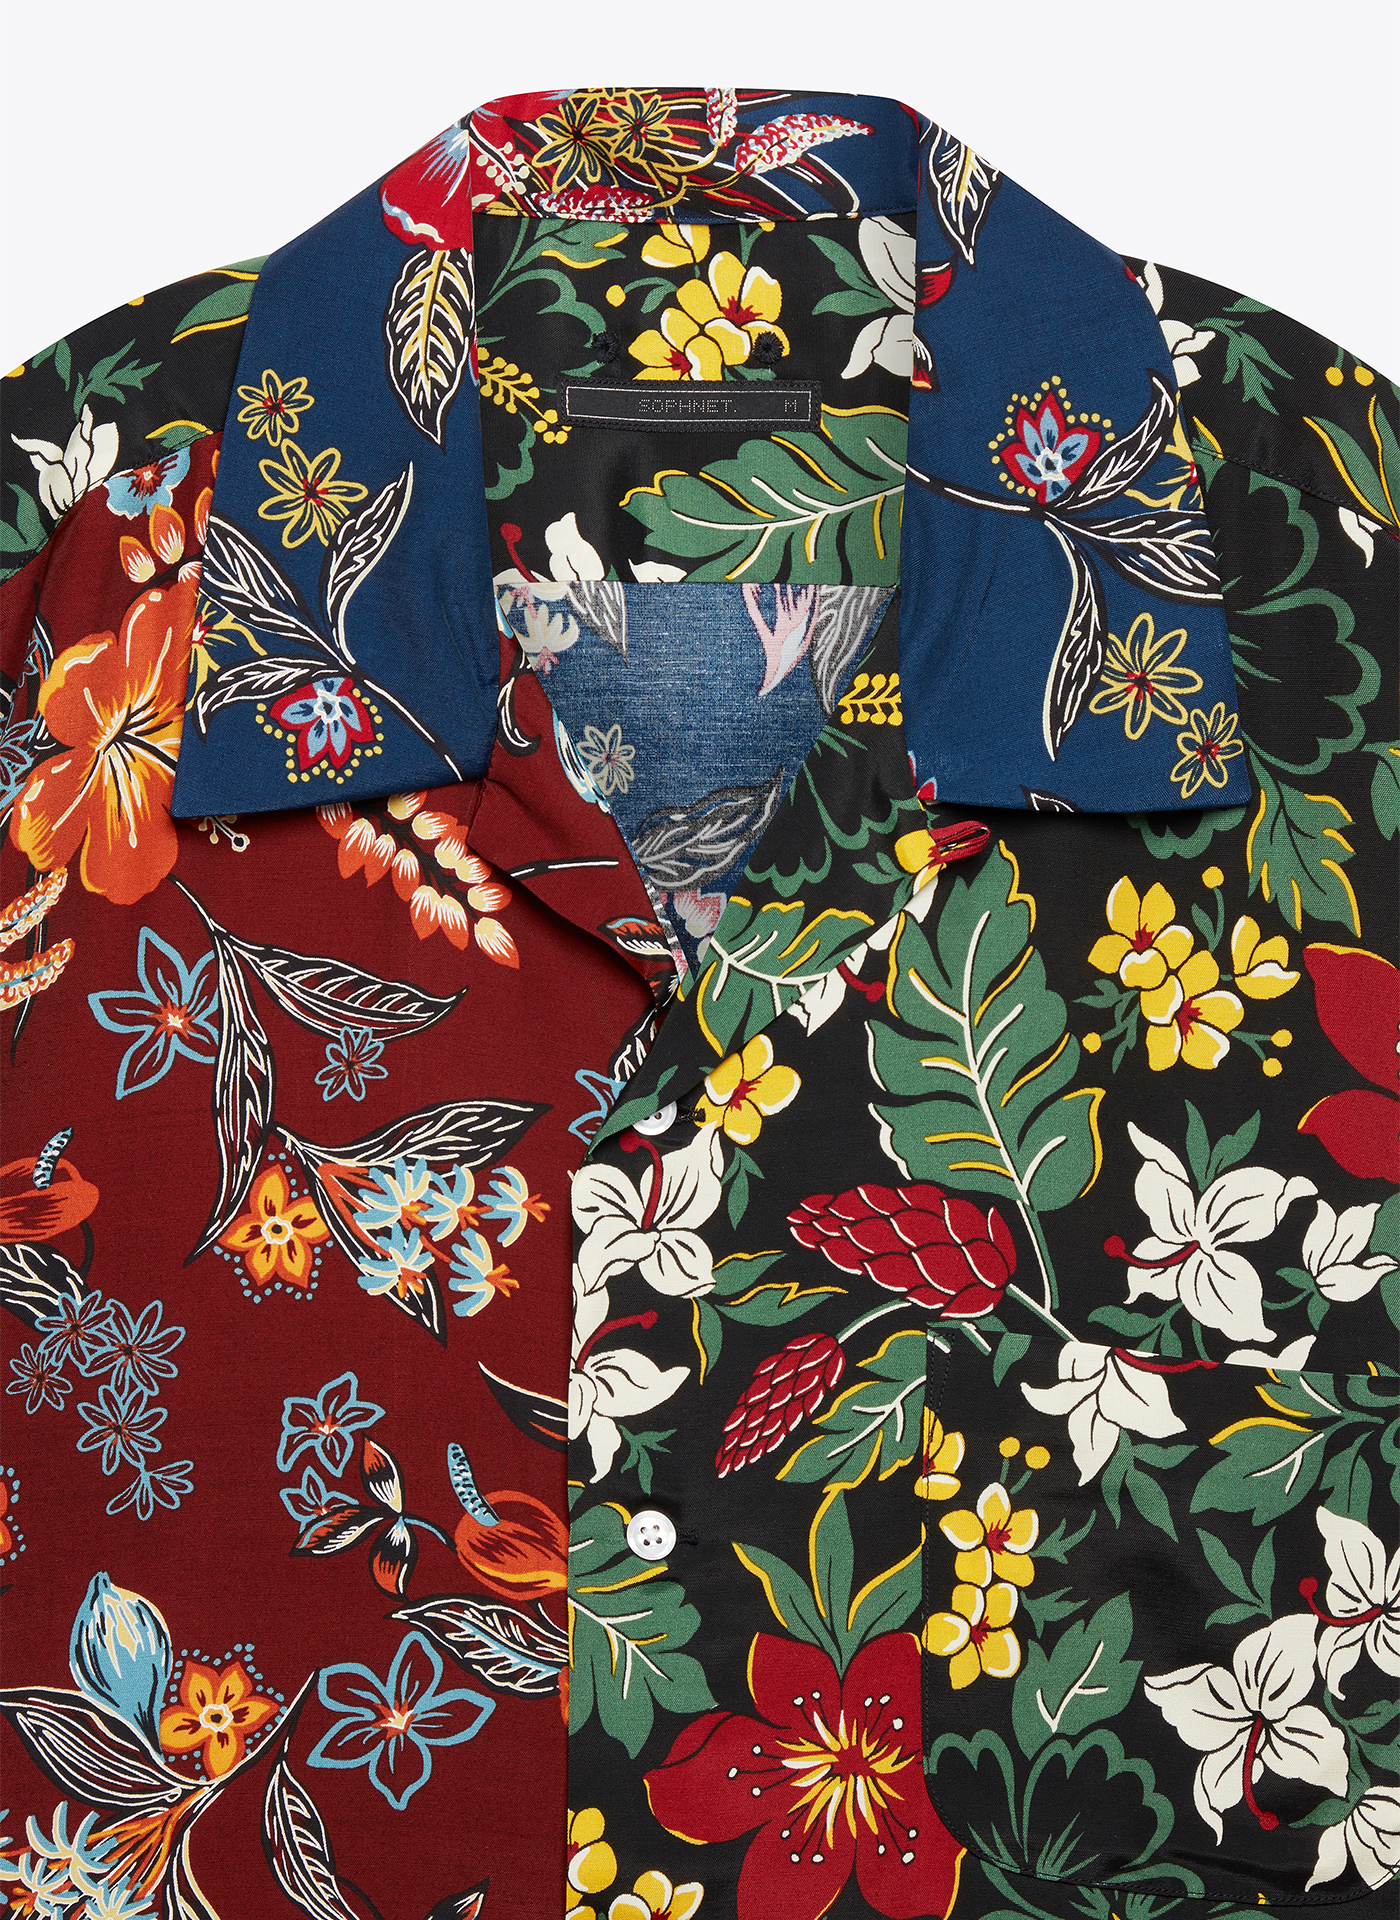 close up of a floral patterned t-shirt